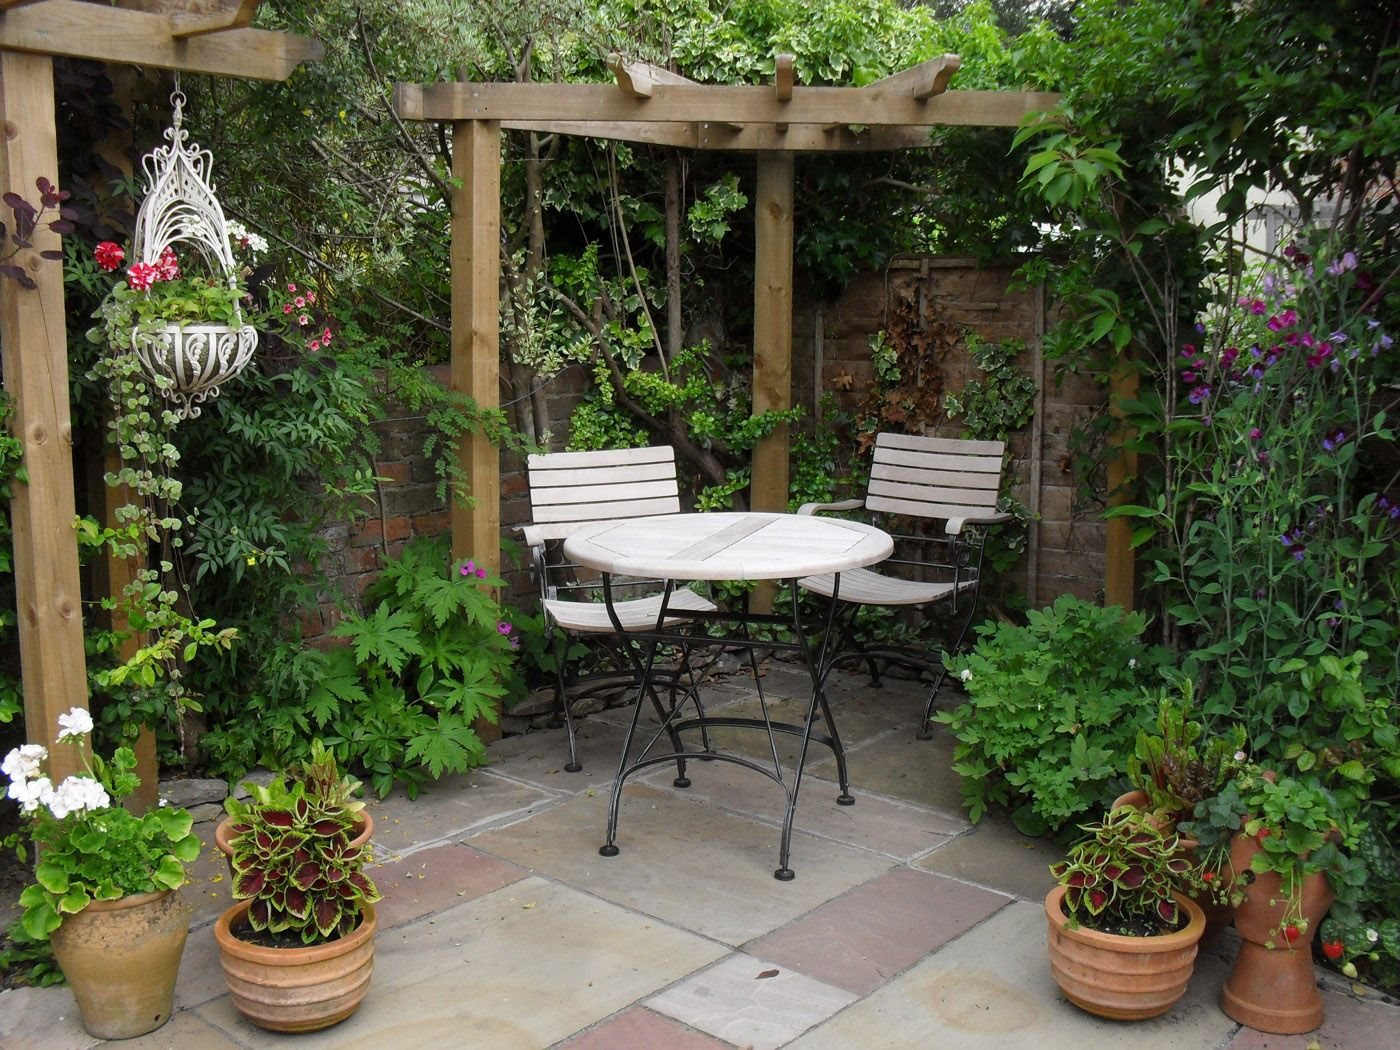 Best 25+ Small patio gardens ideas on Pinterest | Patio courtyard ideas, Small  garden planting ideas and Small garden corner